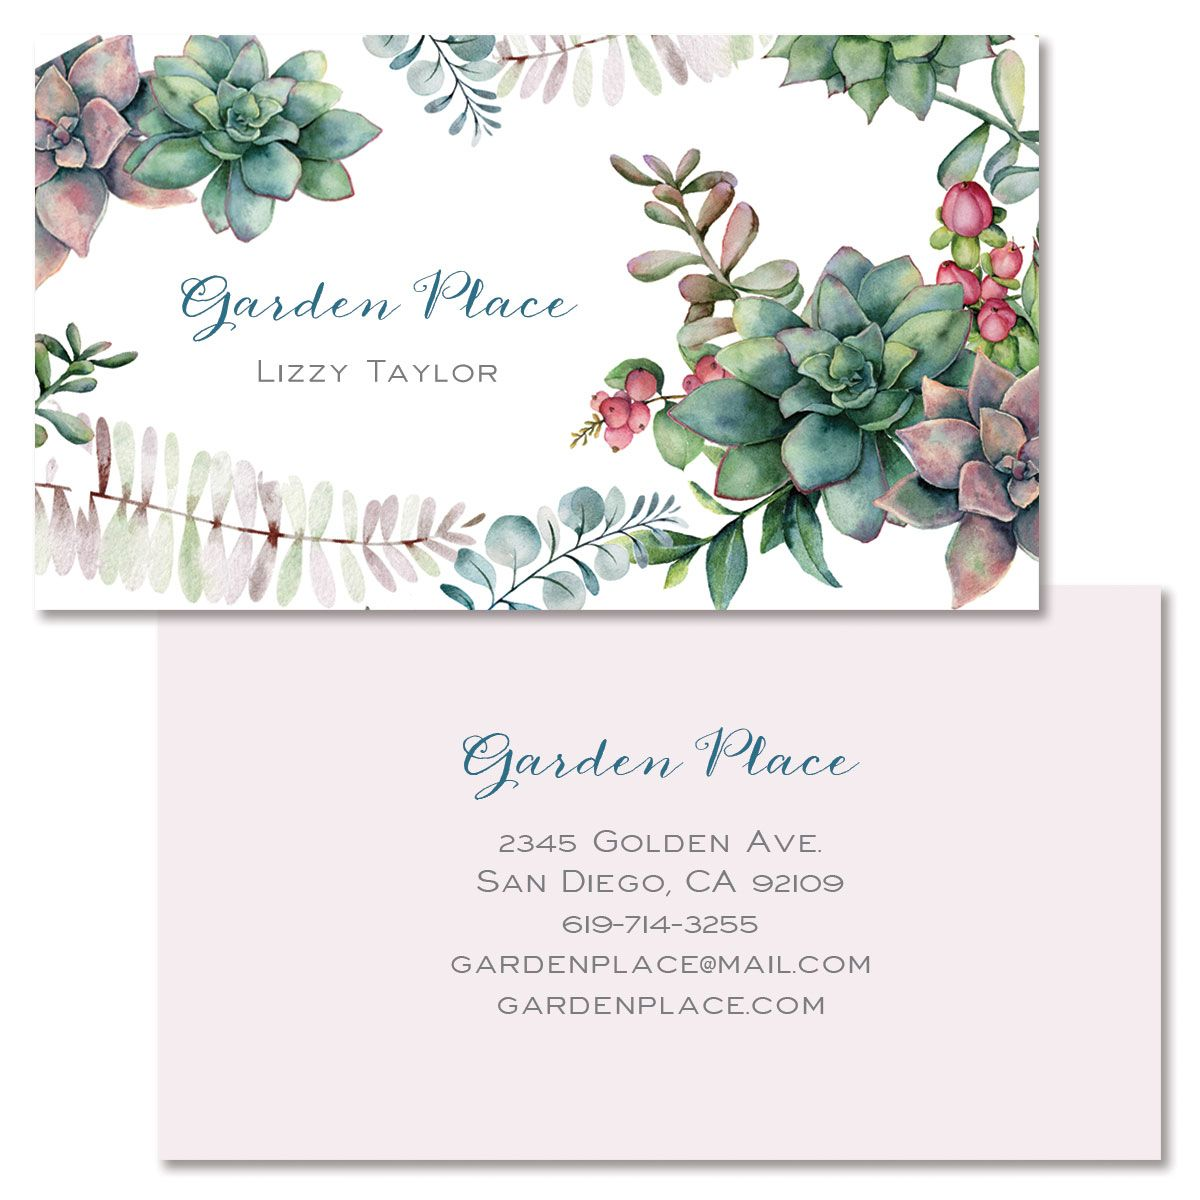 Green Foliage Double-Sided Business Card